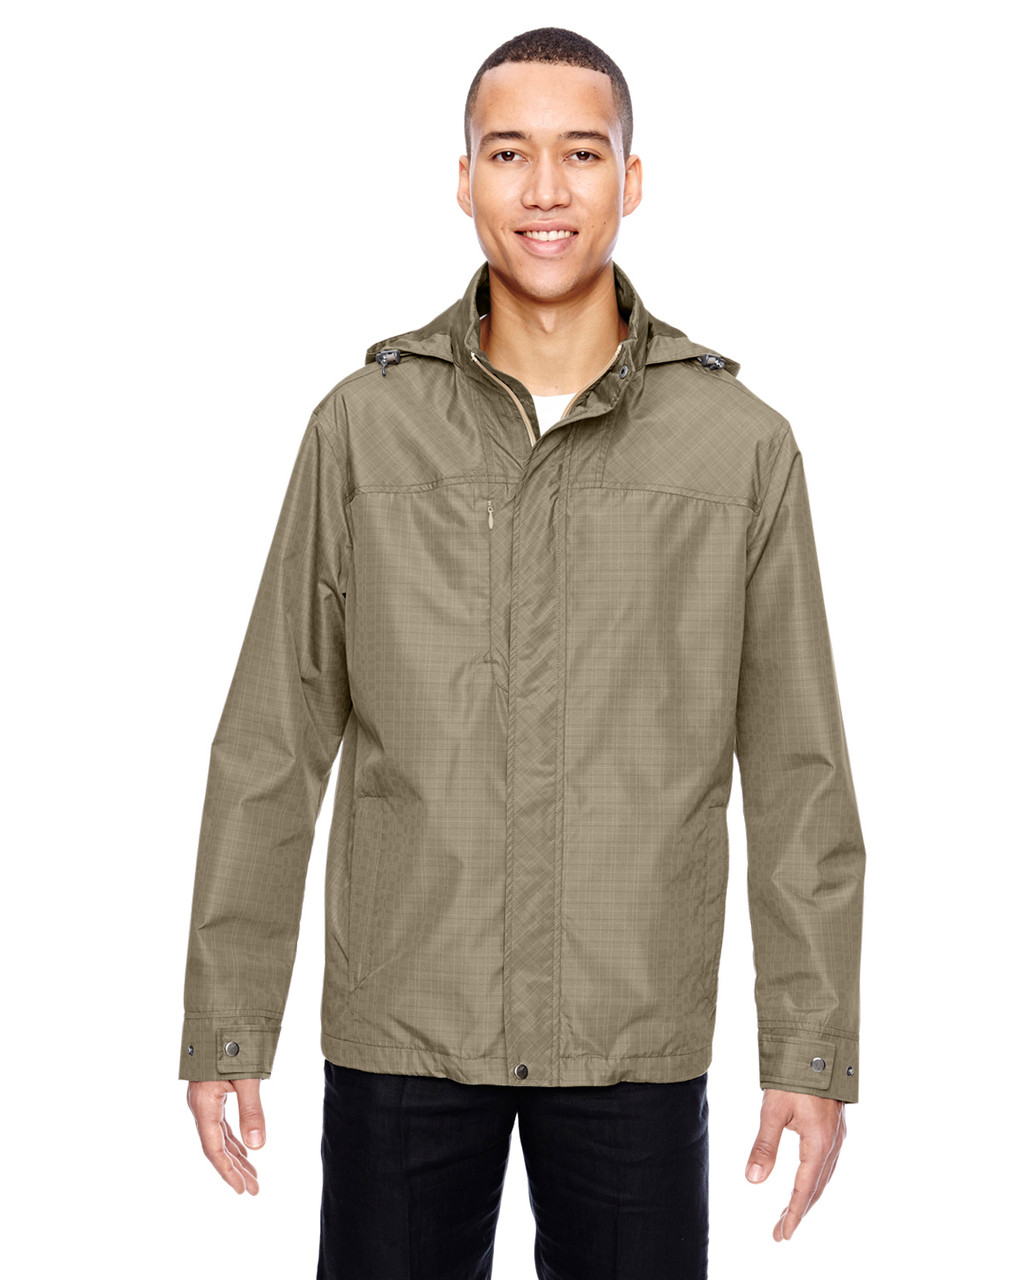 Stone 88216 North End Excursion Transcon Lightweight Jacket with Pattern   Blankclothing.ca